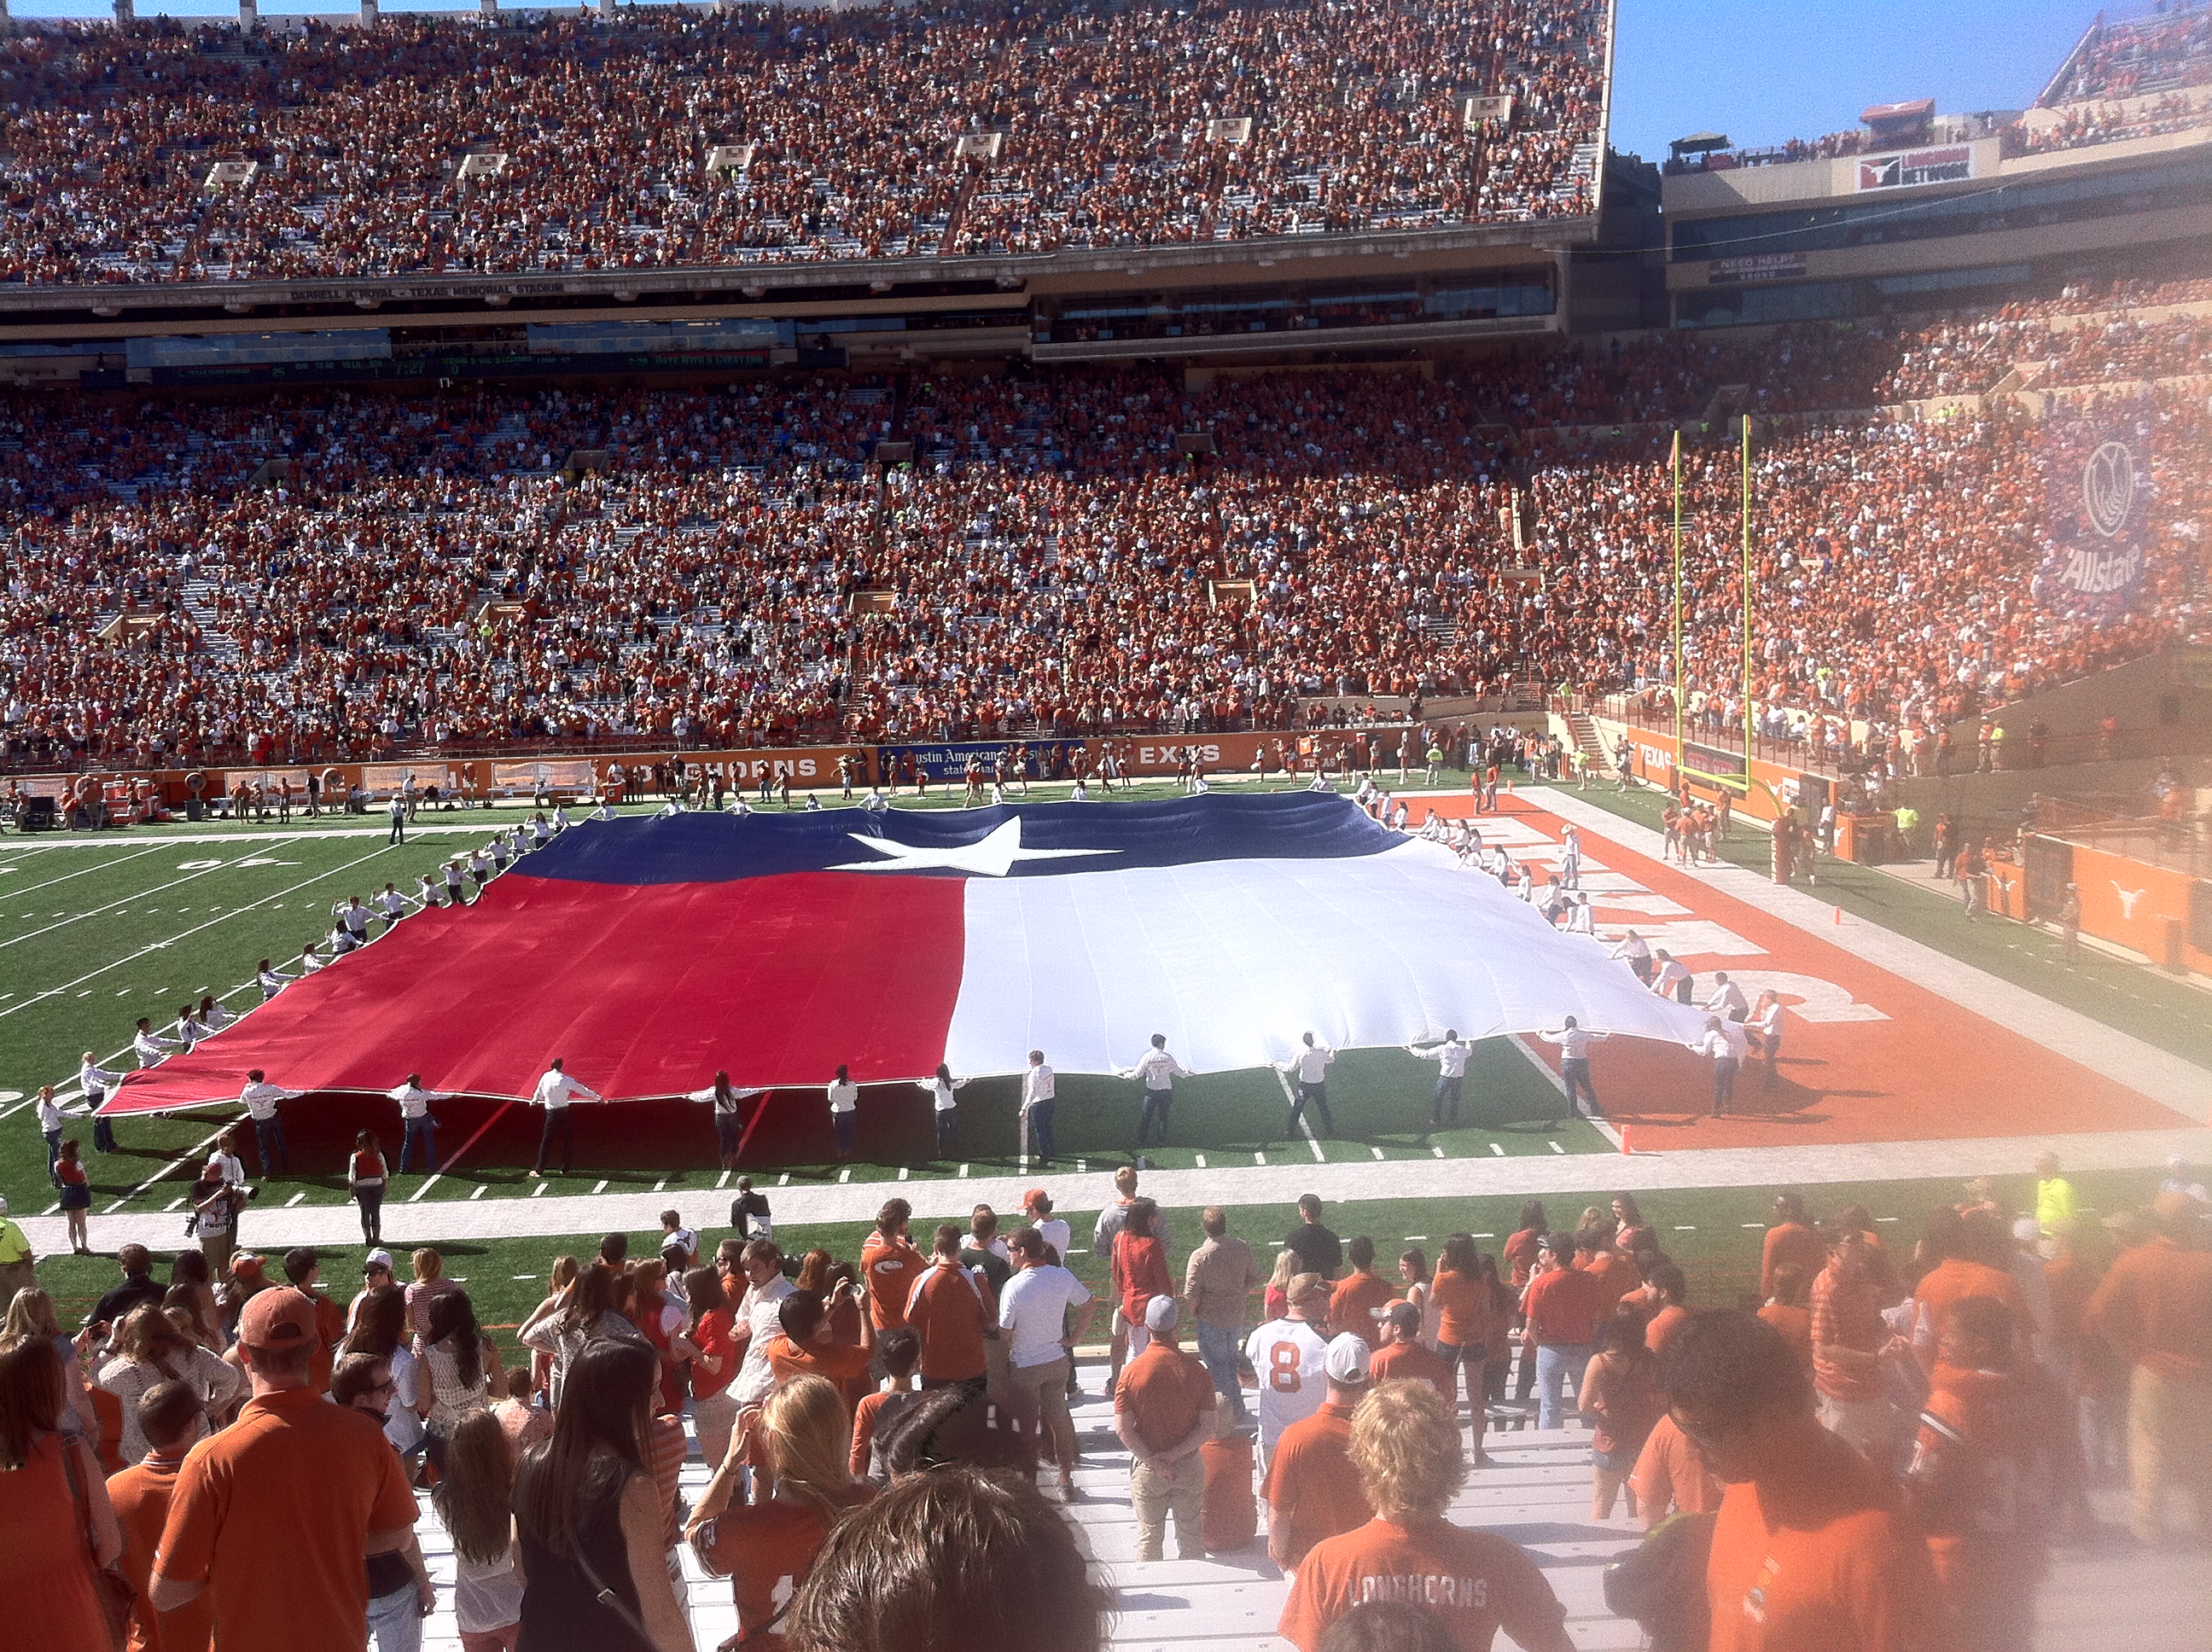 It's a pre-game tradition at Longhorn games to unveil the Texas flag.  Alpha Phi Omega is the group in charge of showing the flag.